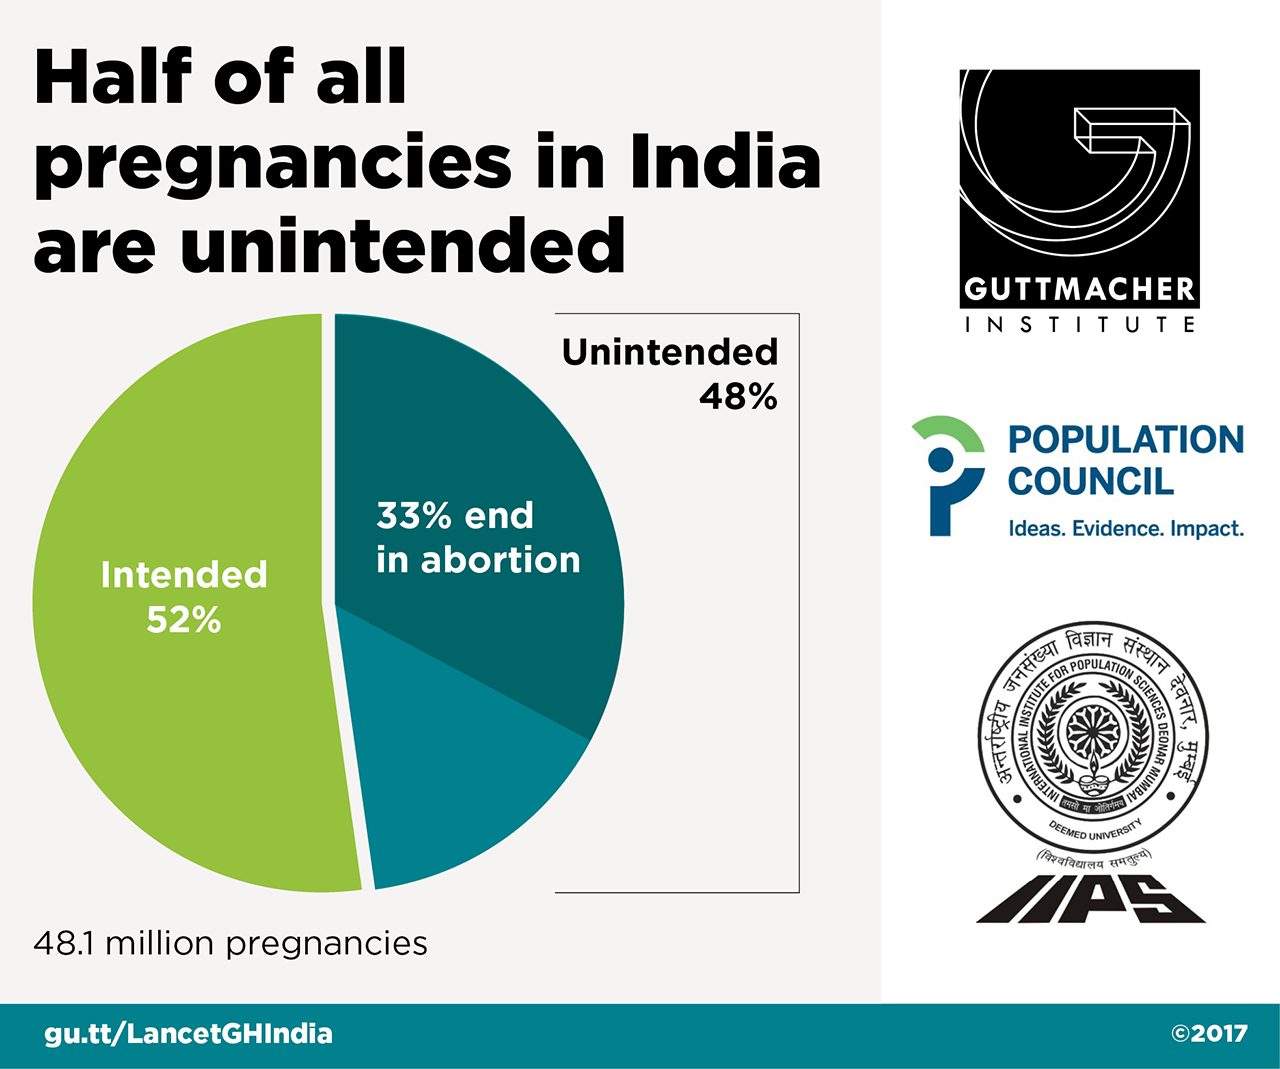 Global Views On Abortion: Unintended Pregnancy In India, 2015